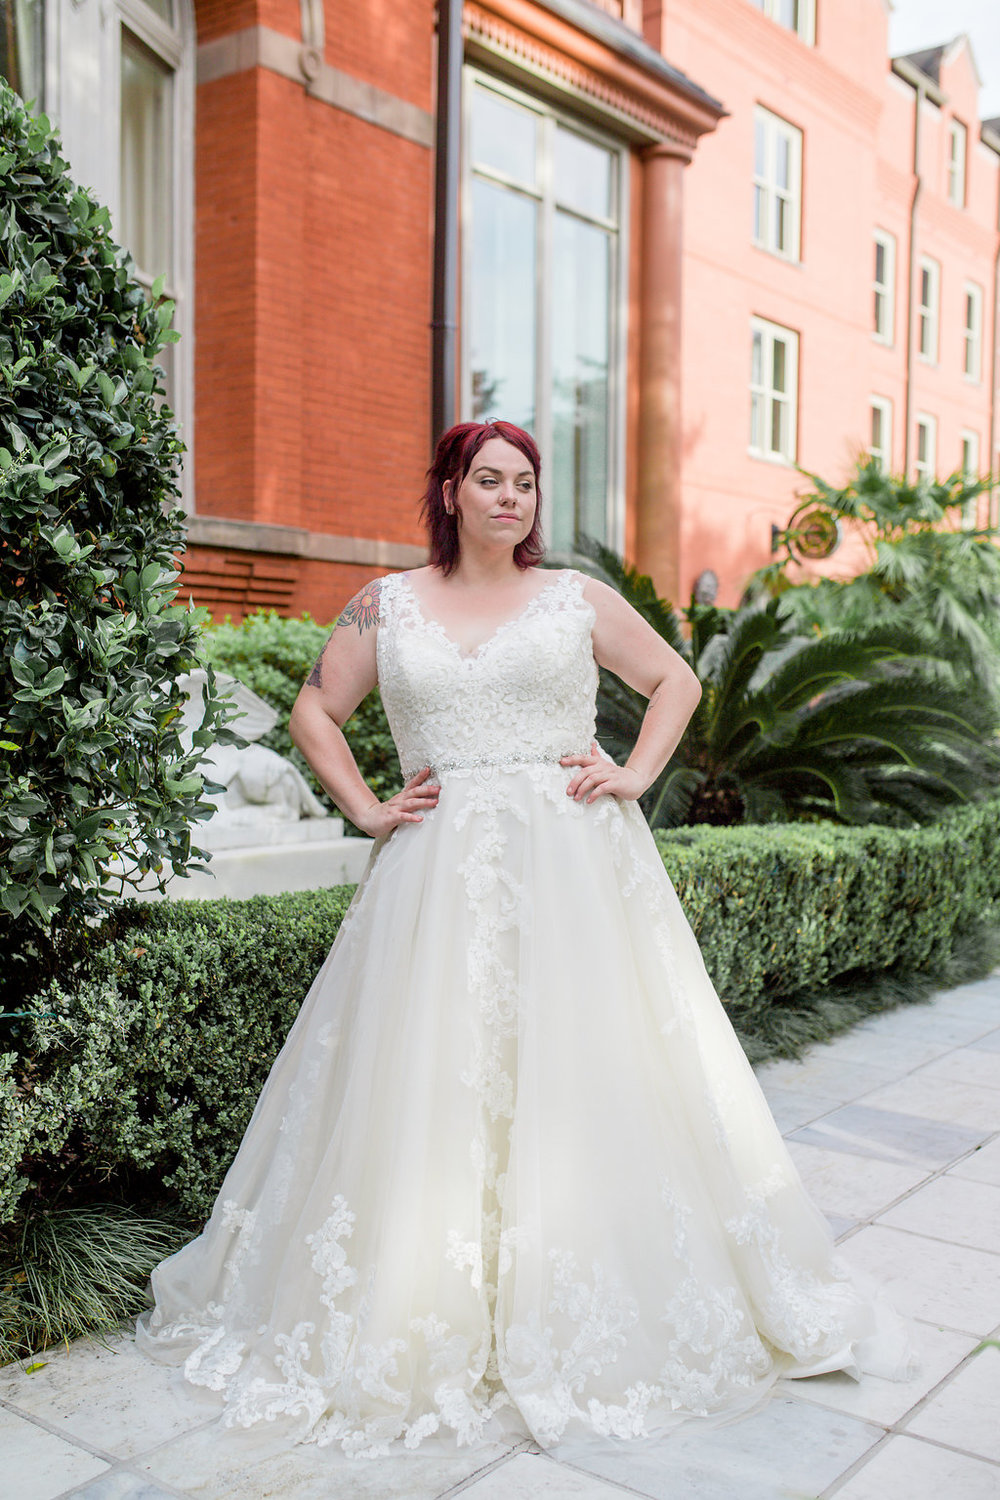 ivory-and-beau-bridal-boutique-alexis-sweet-photography-plus-sized-wedding-gowns-savannah-ga-plus-sized-wedding-dress-savannah-ga-3.jpg